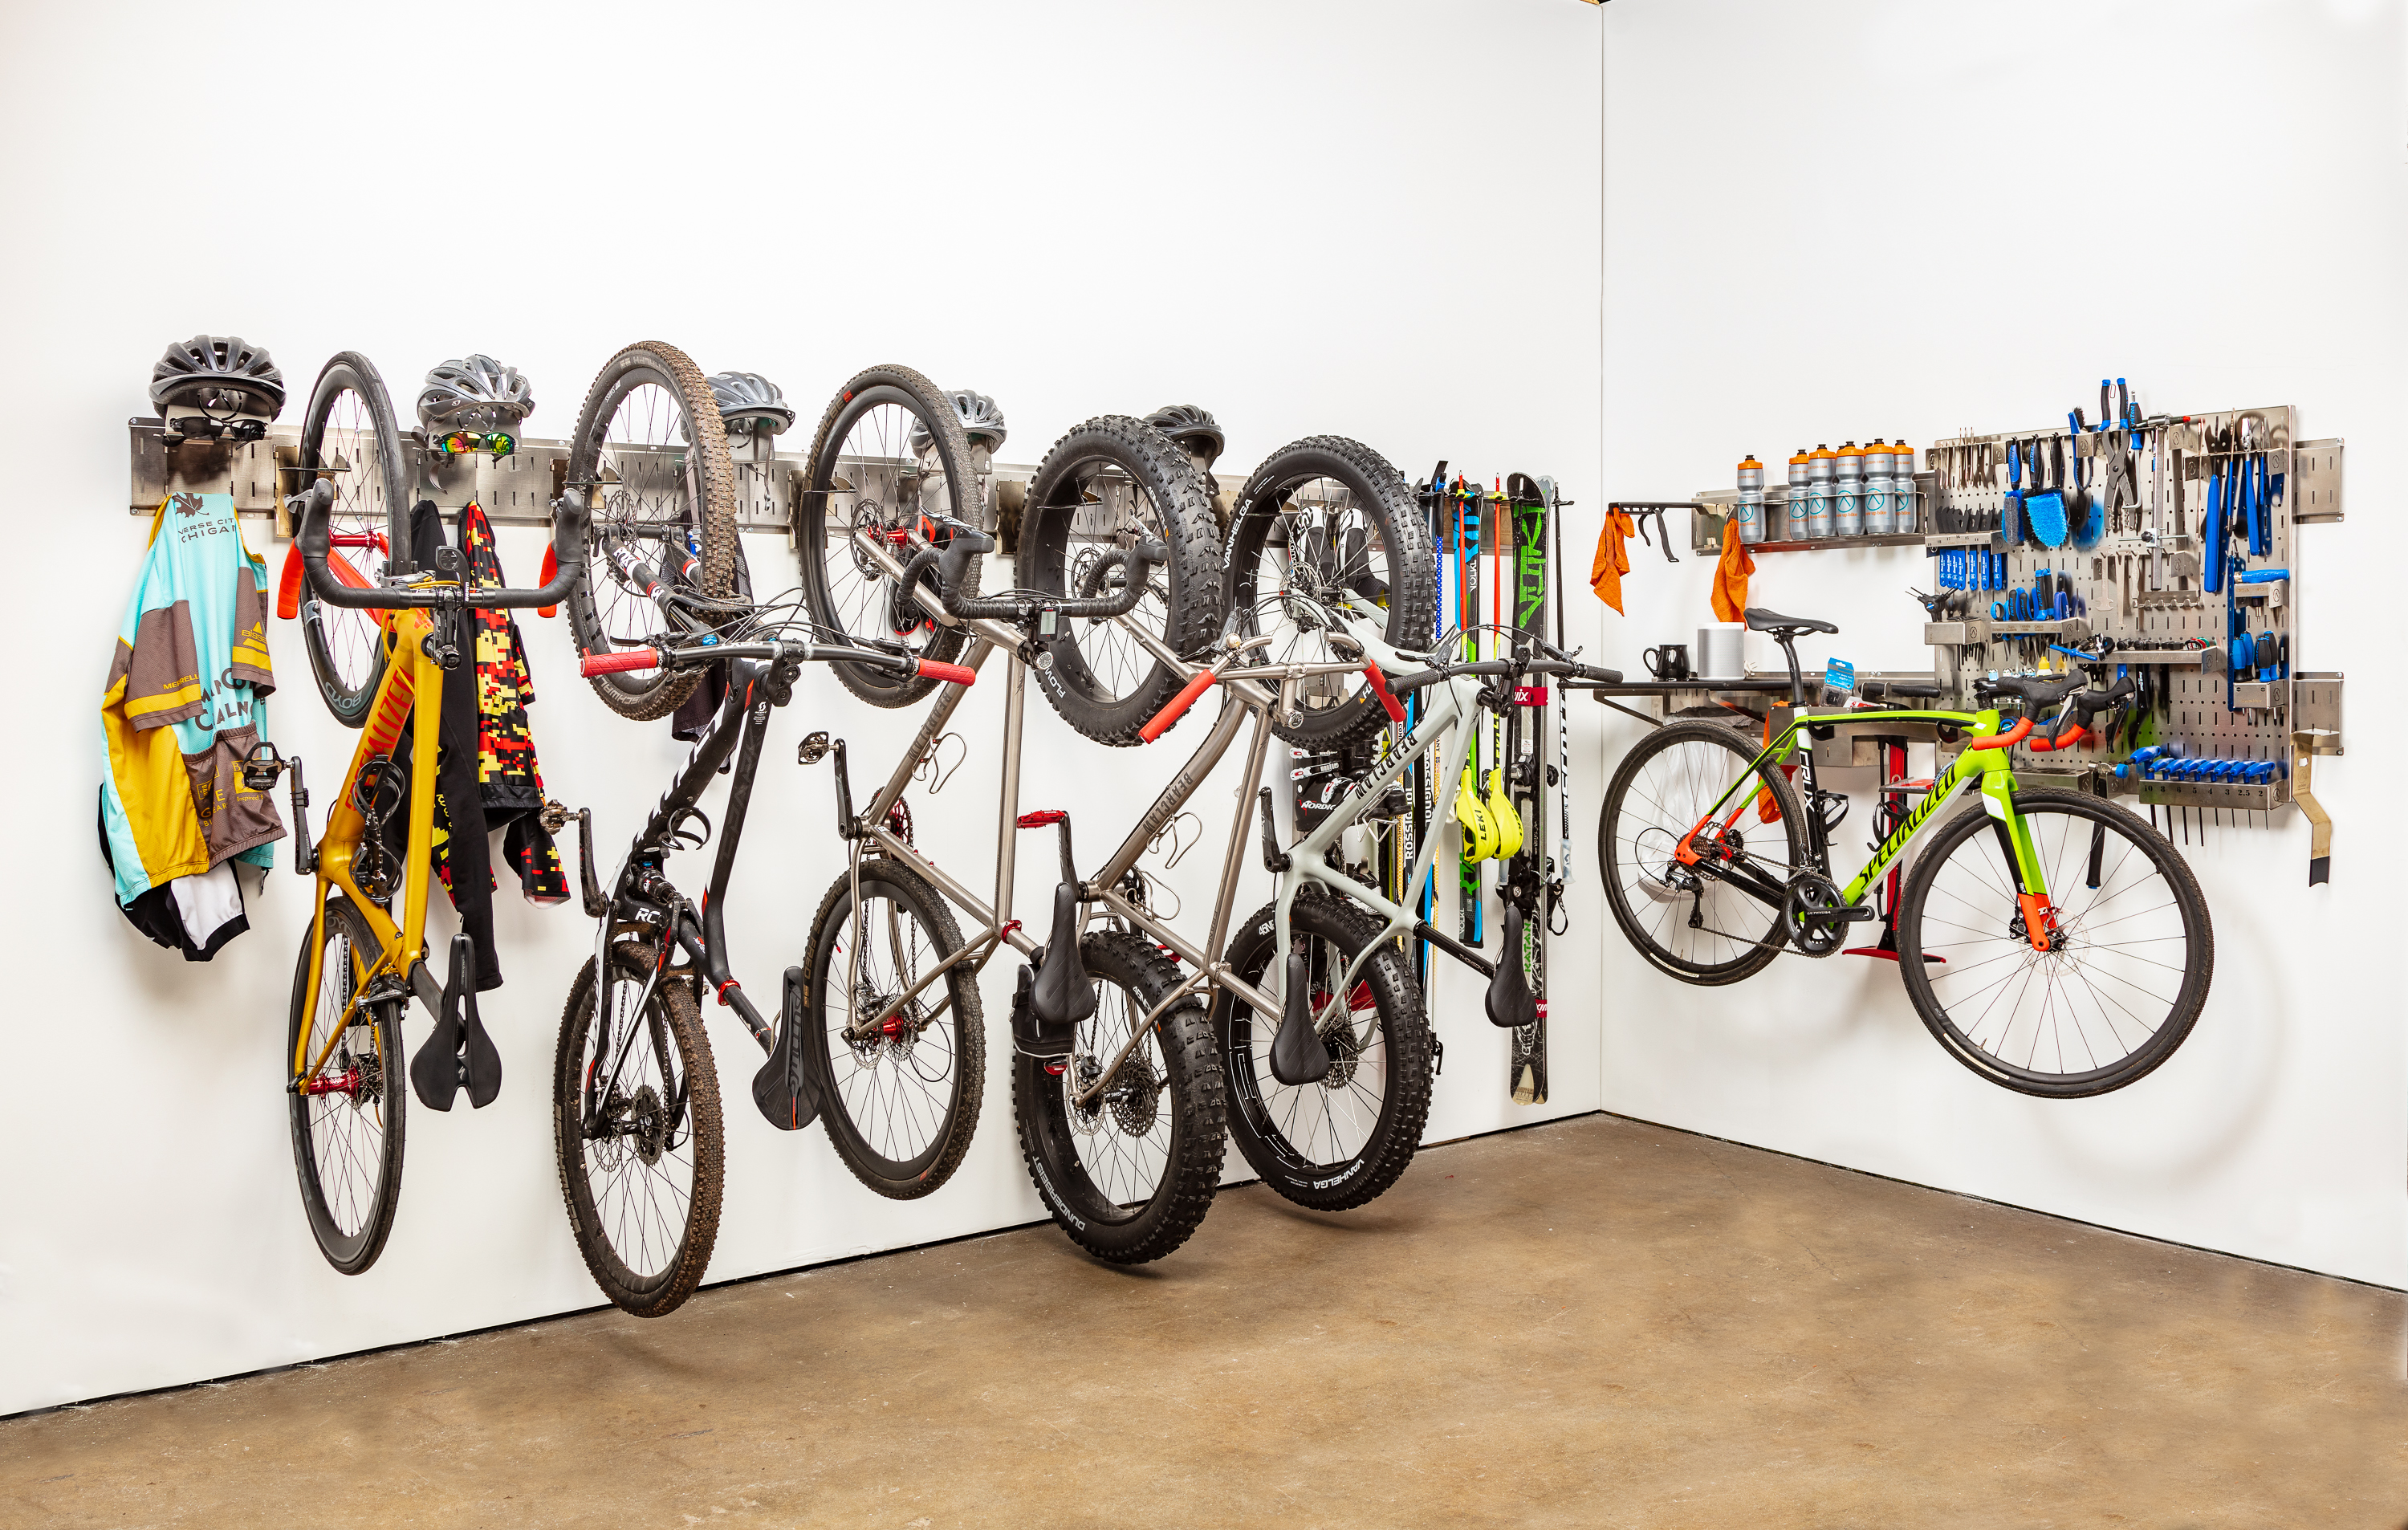 Garage Journal Bike Storage Bike Storage System Solution From Up Bike